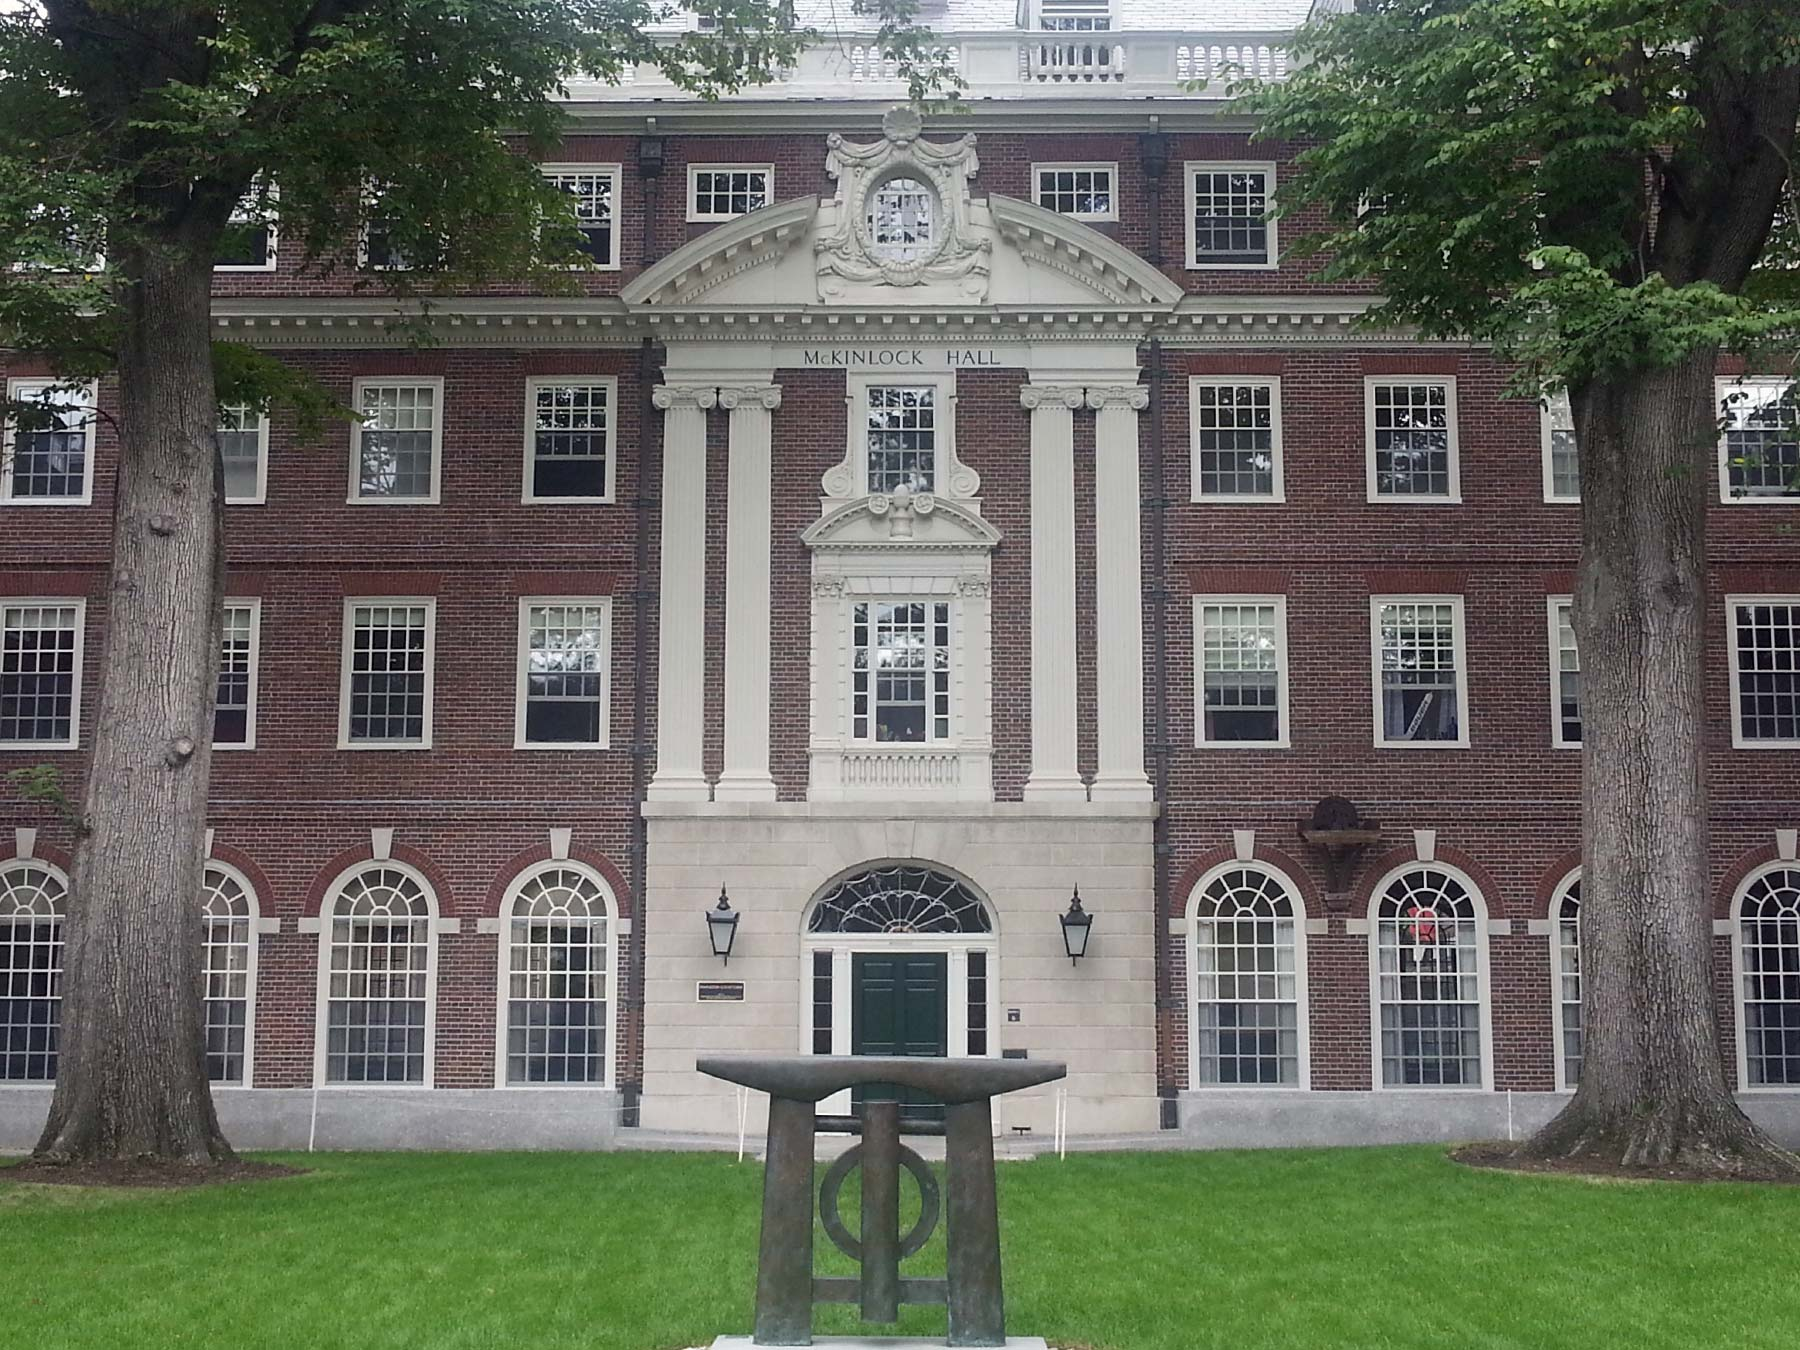 McKinlock-Hall-Harvard-MA-1